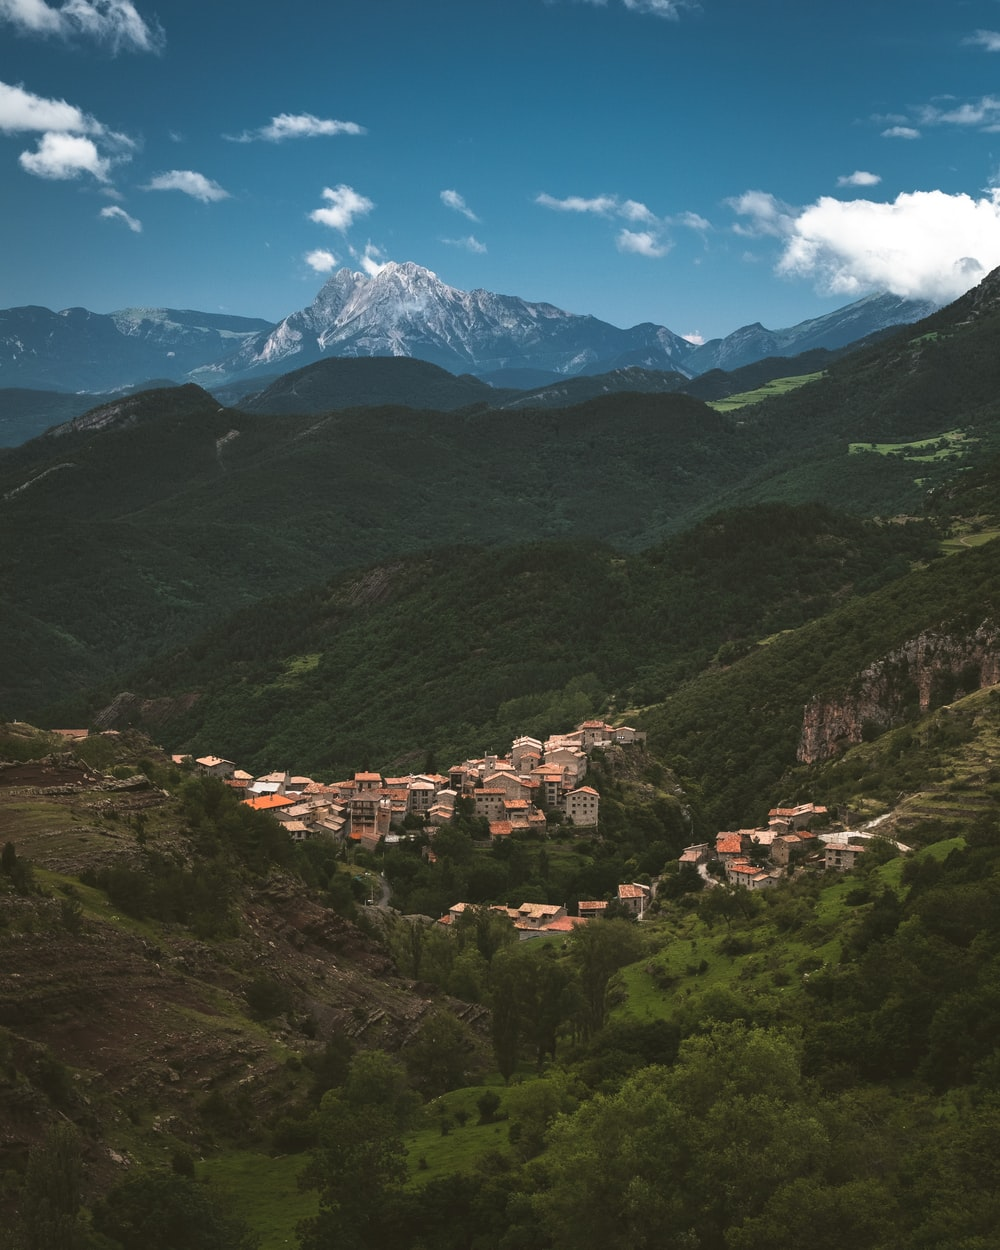 buildings in the middle of mountains and trees